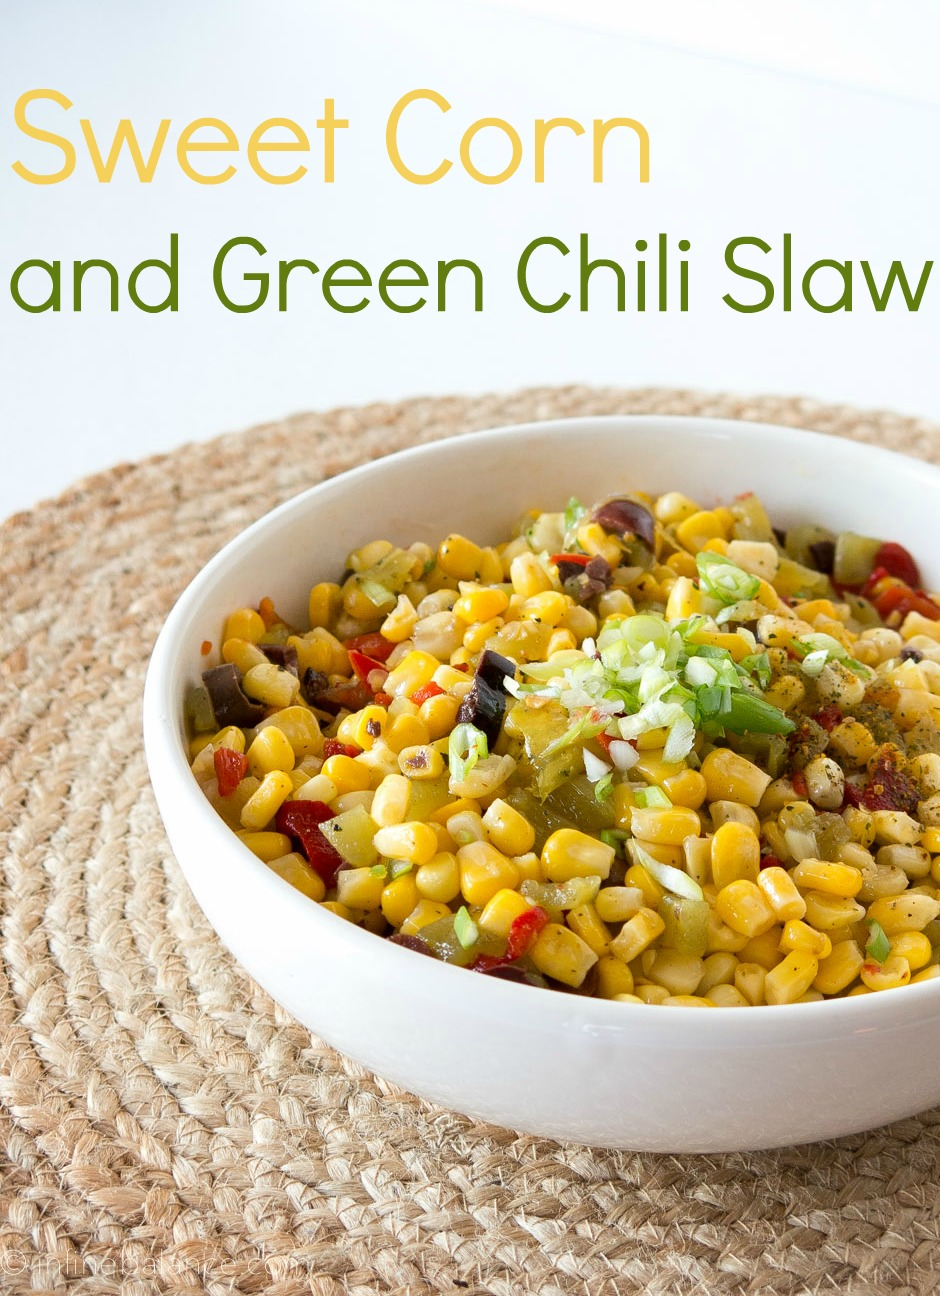 corn and green chili salad in a white bowl - image with text